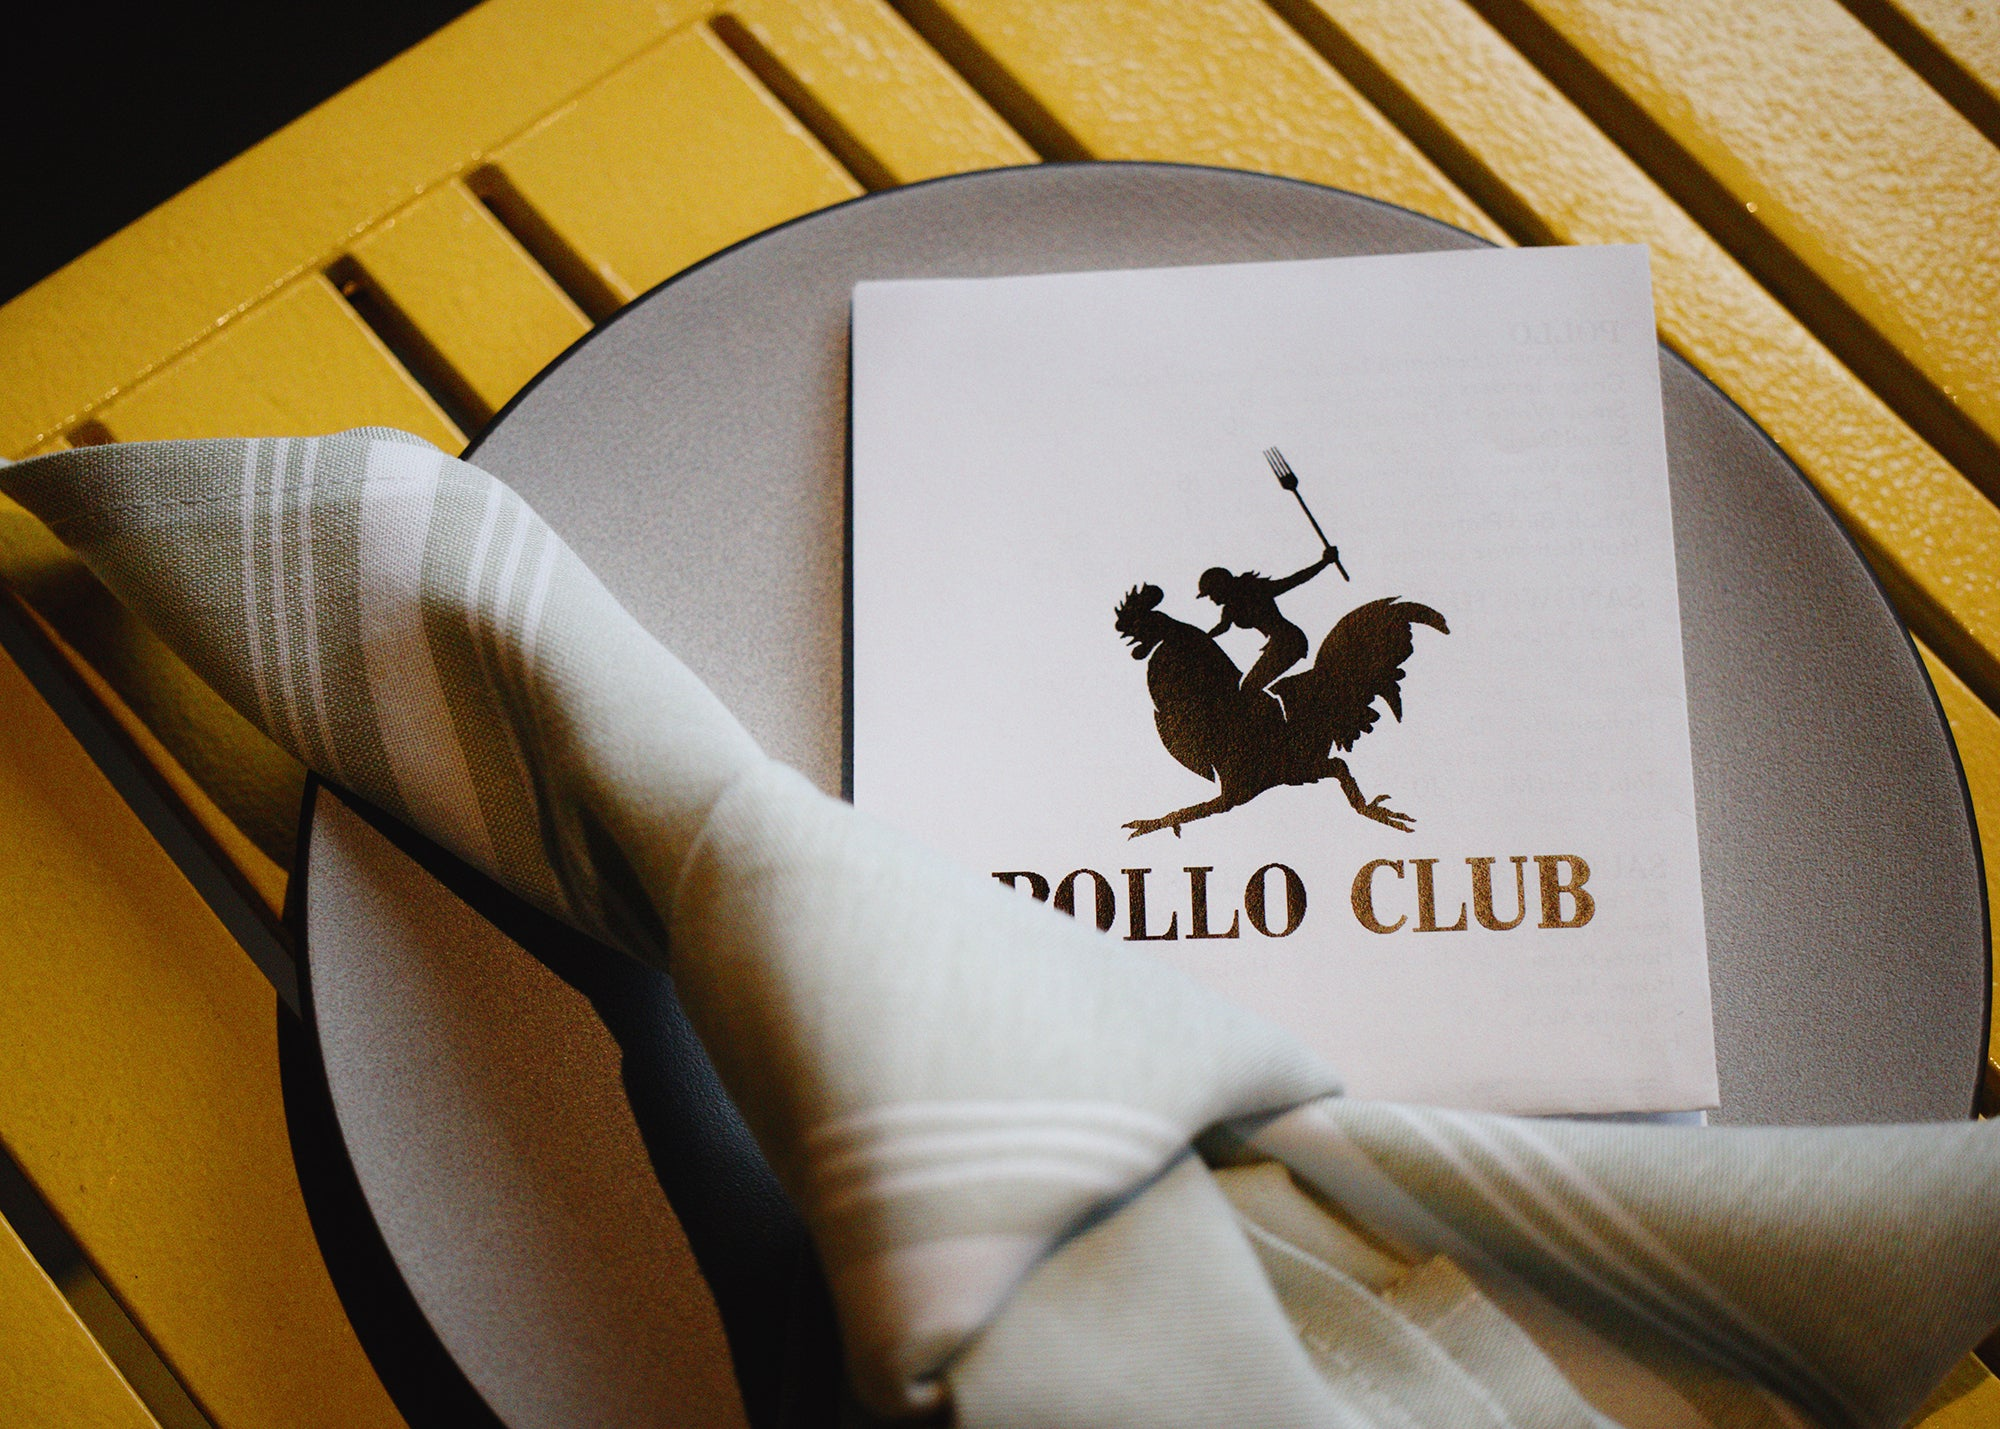 Table setting at Pollo Club